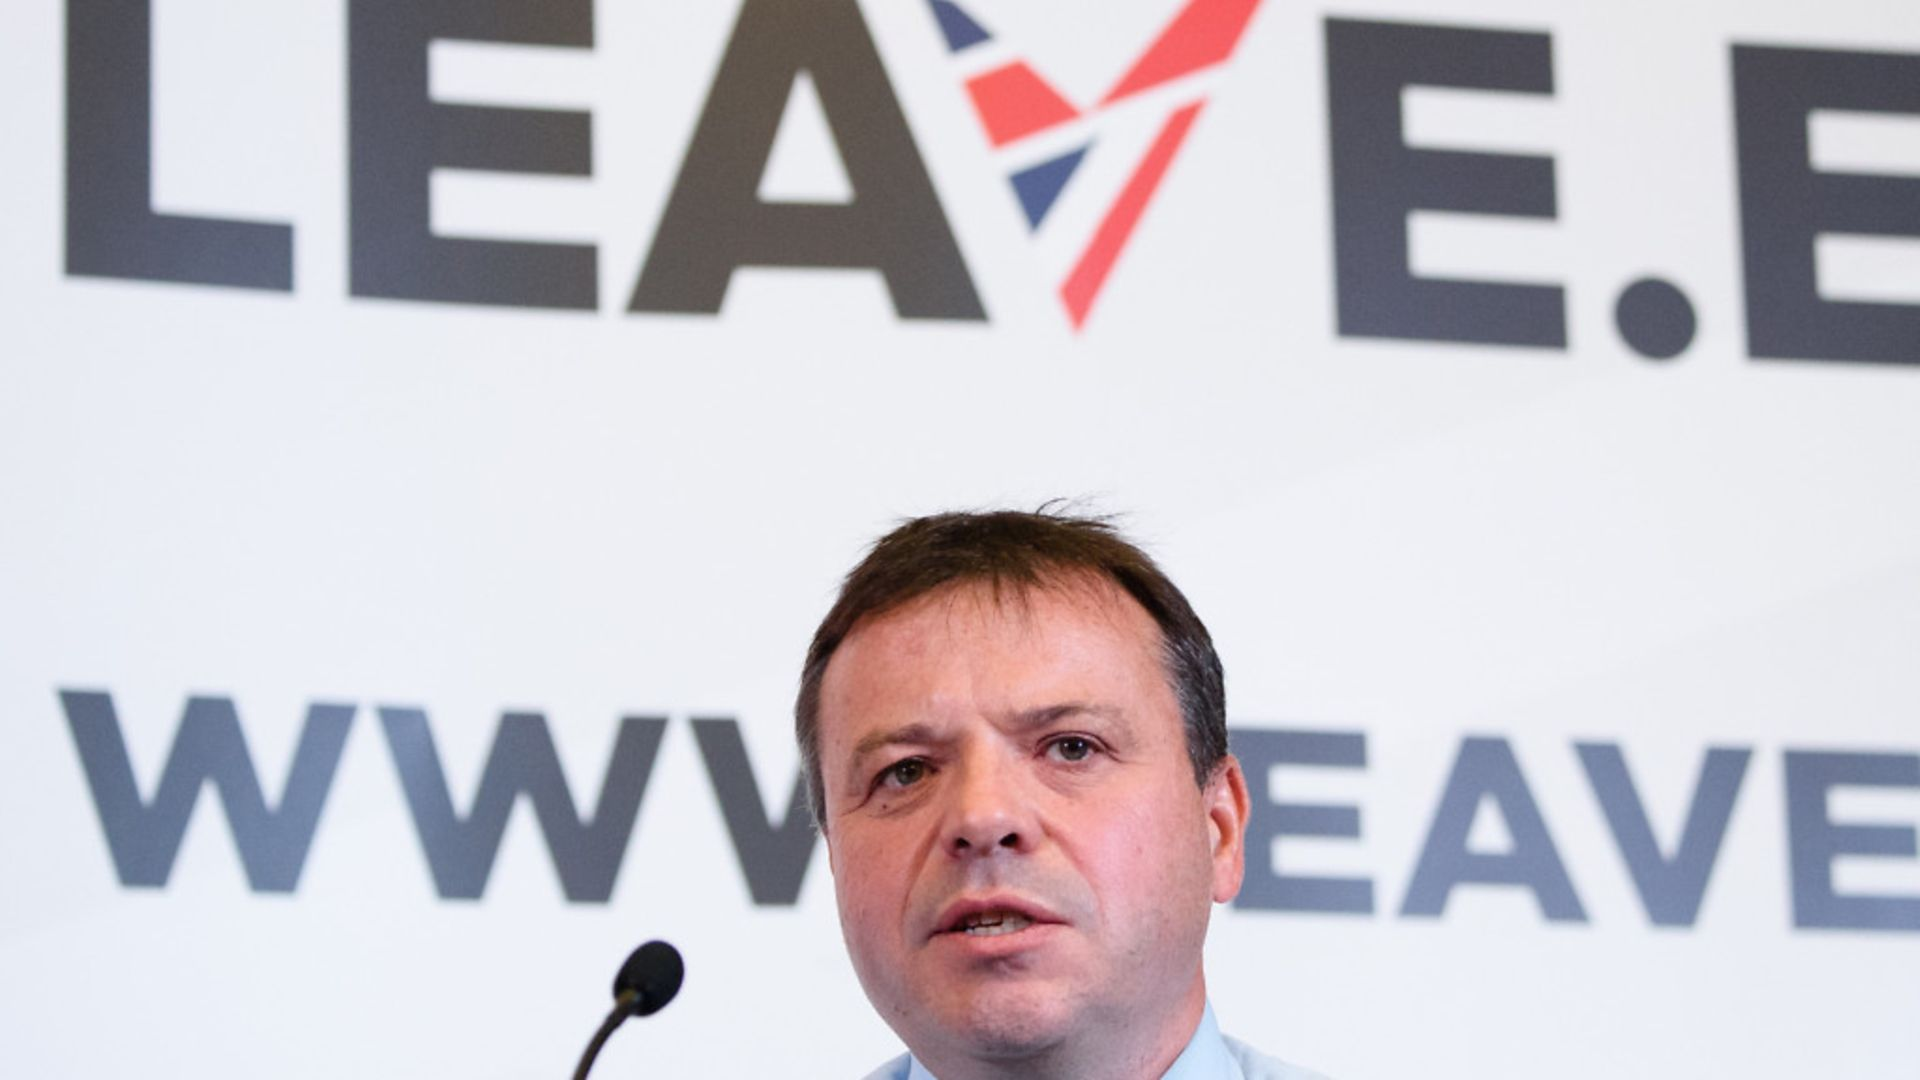 """British businessman Arron Banks takes part in a press briefing by the """"Leave.EU"""" campaign group - Credit: LEON NEAL/AFP/Getty Images"""